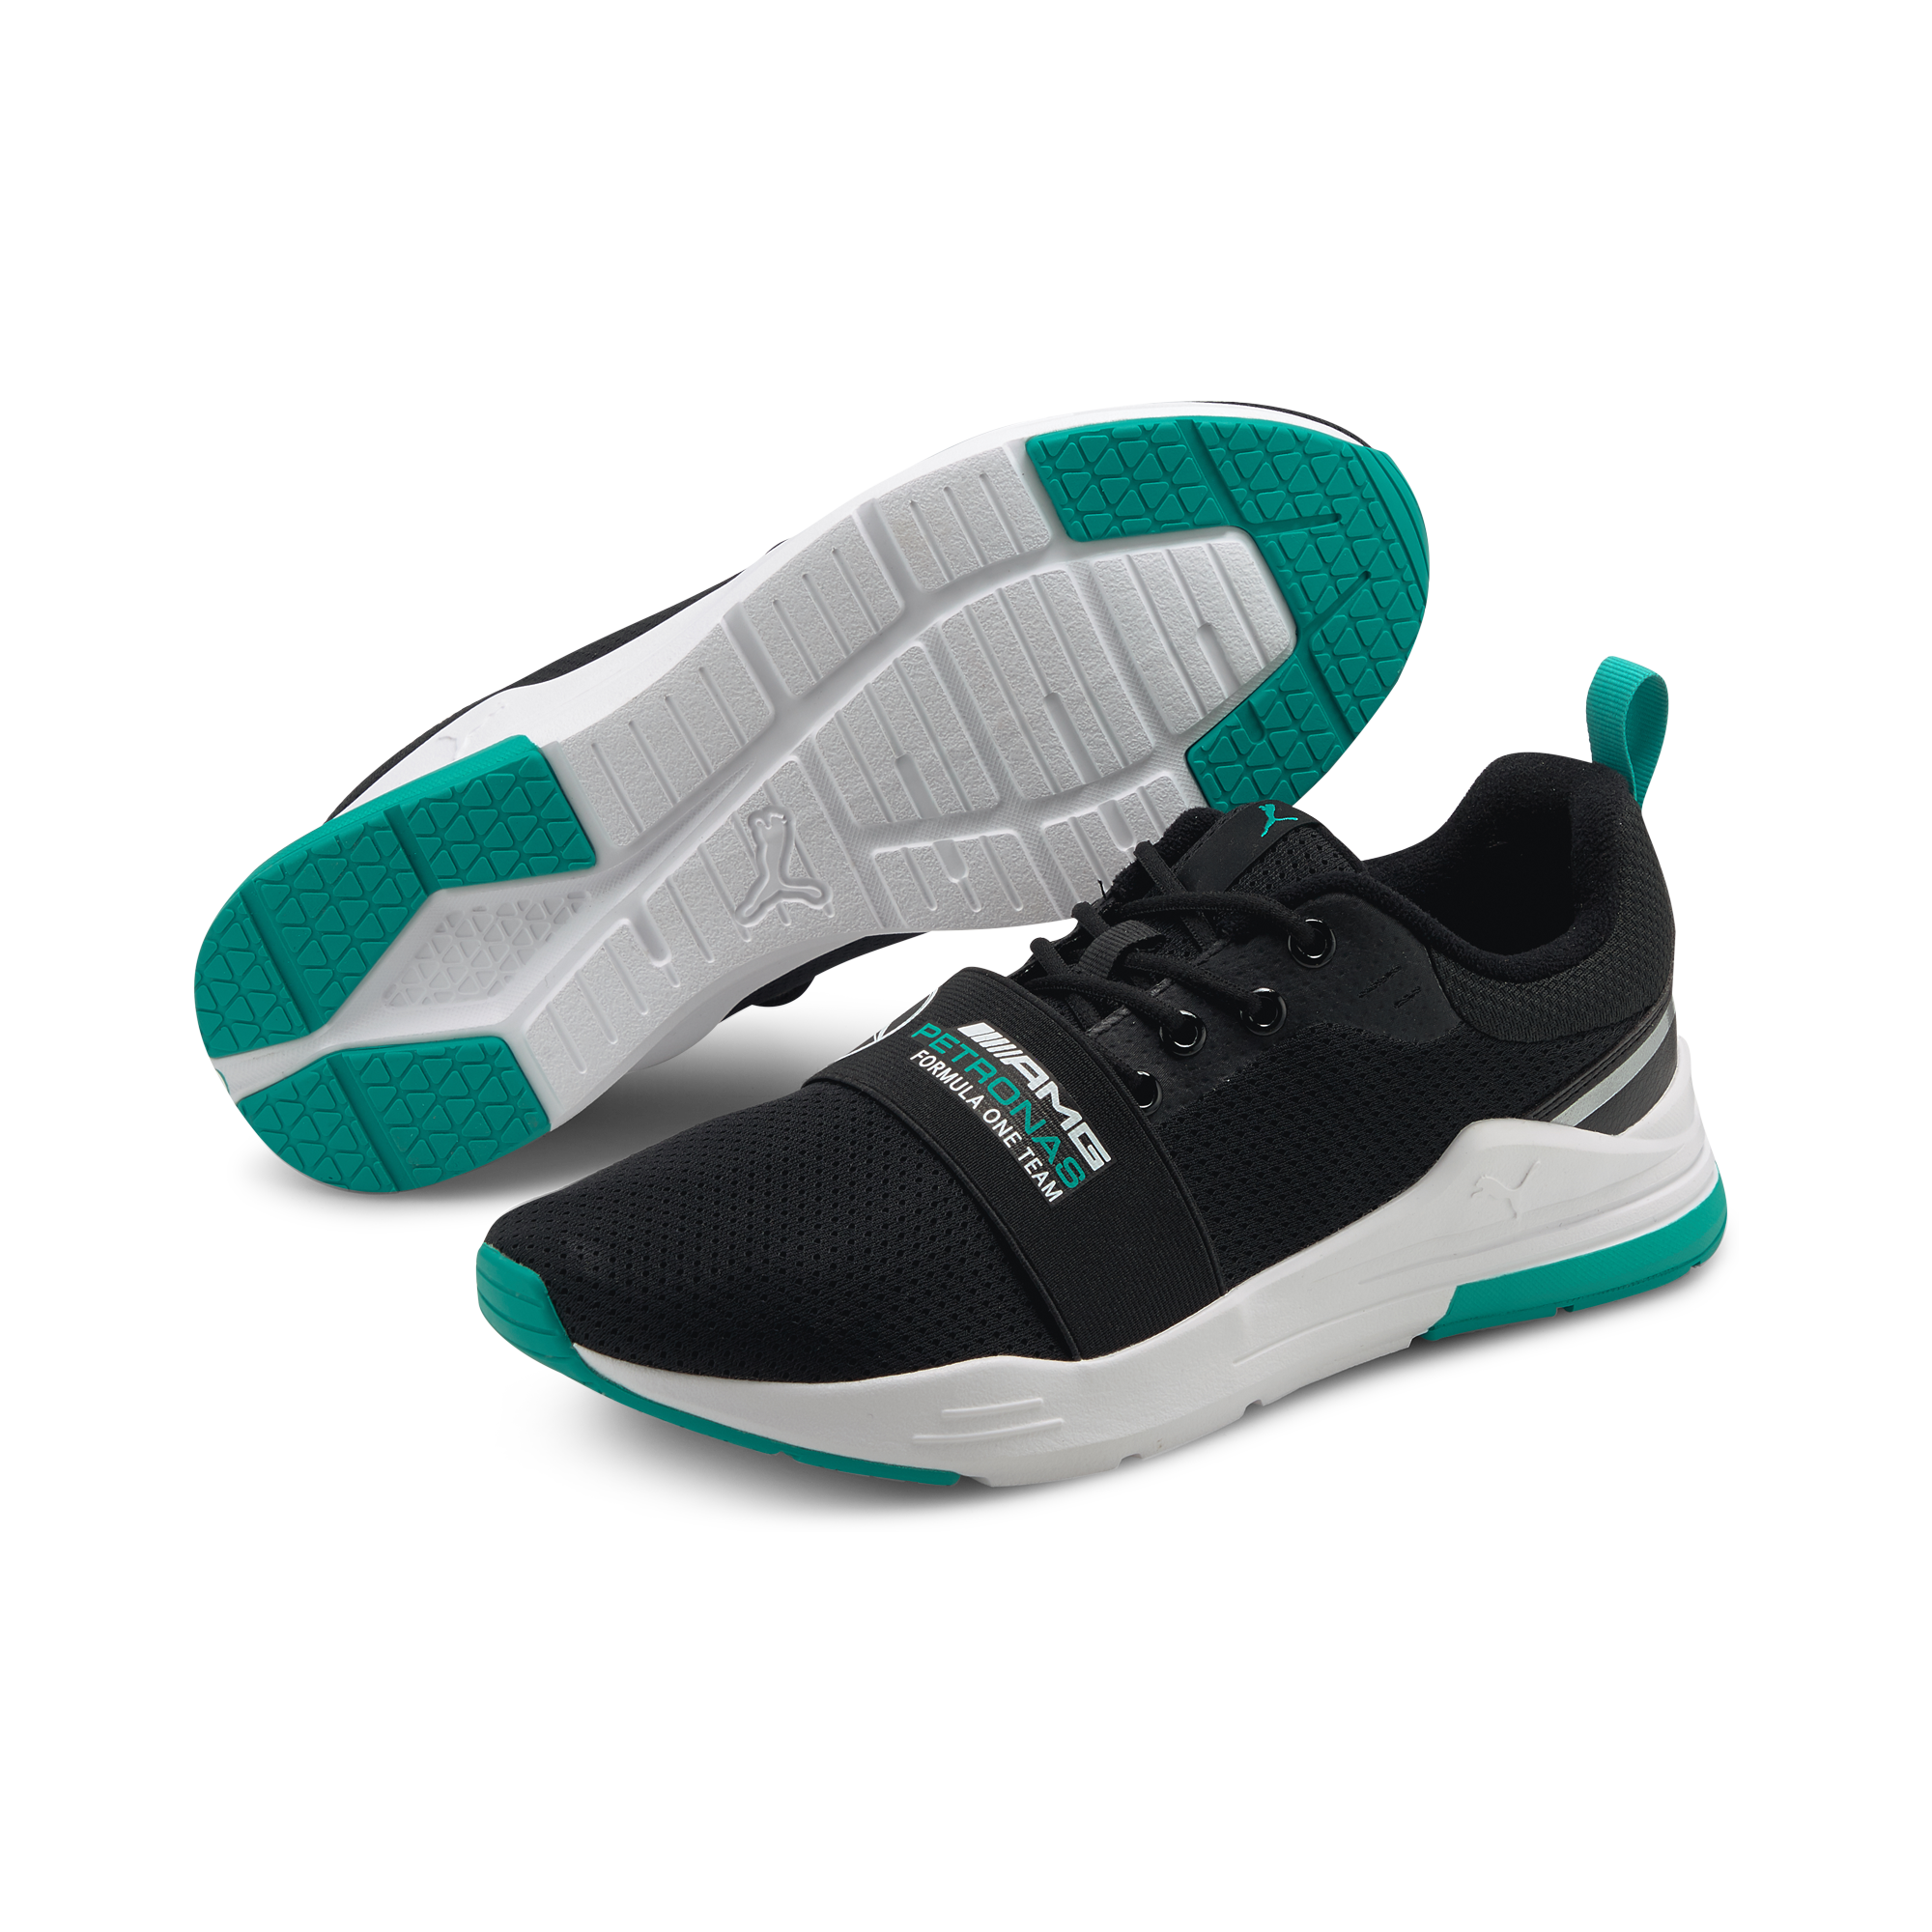 Lifestyle sneakers, Wired Run